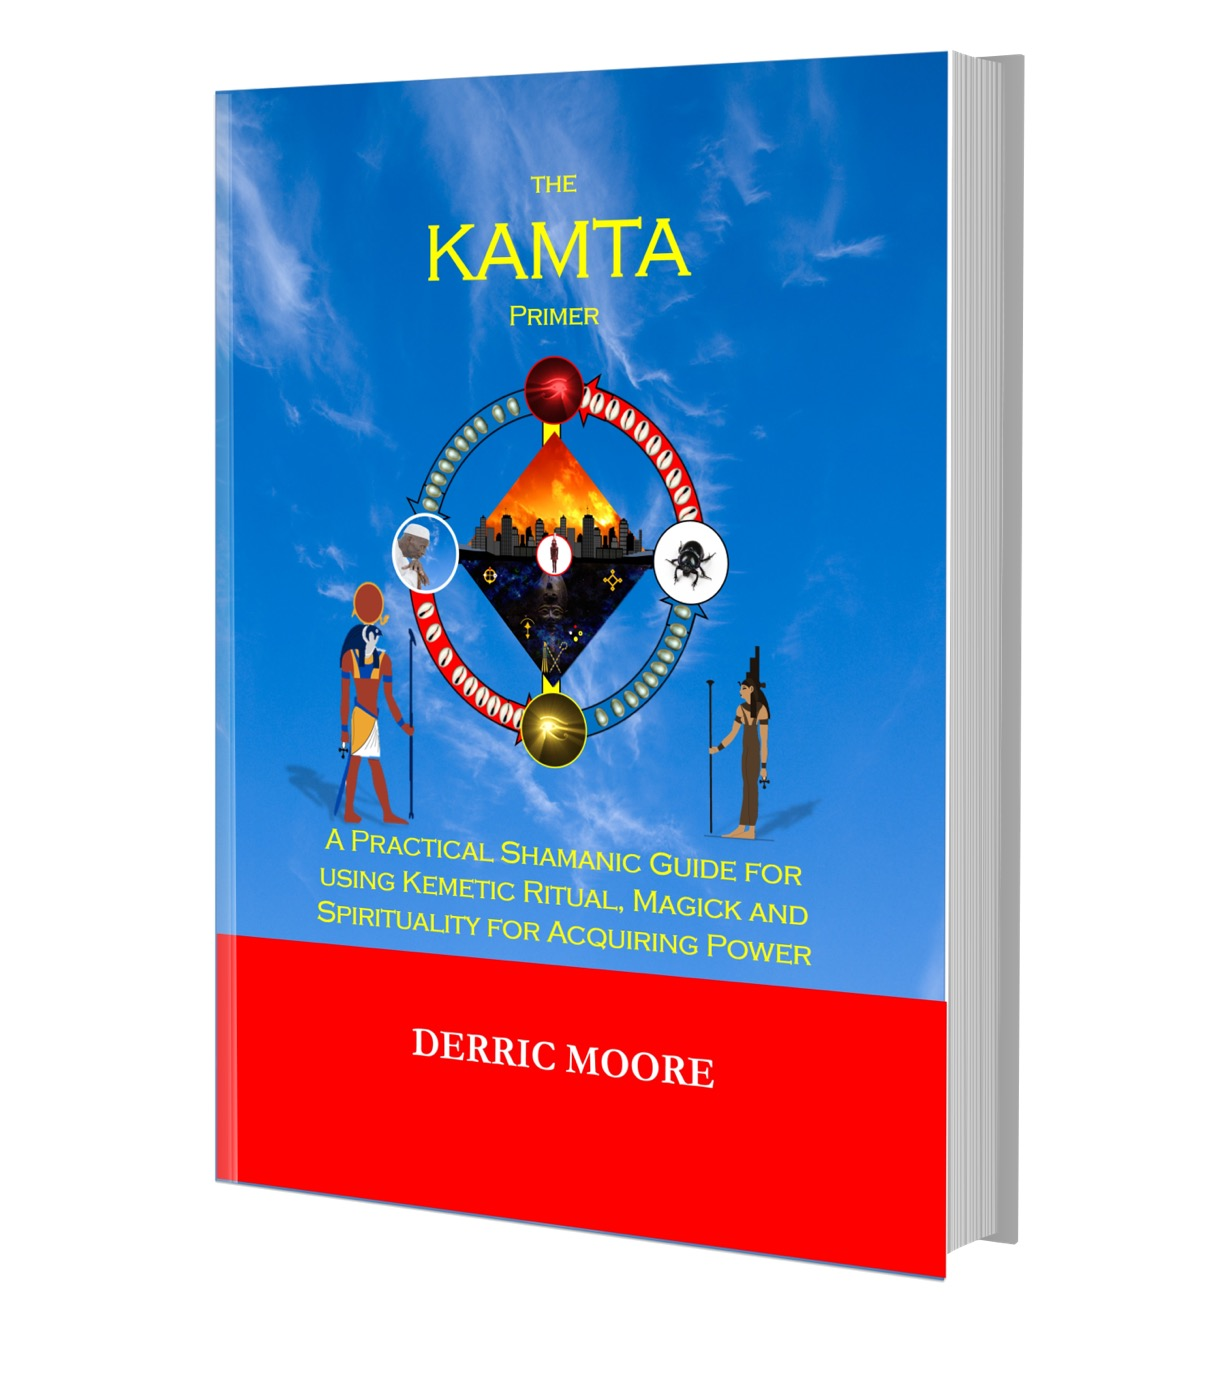 The KAMTA Primer: A Practical Shamanic Guide for using Kemetic Ritual, Magick and Spirituality for Acquiring Power